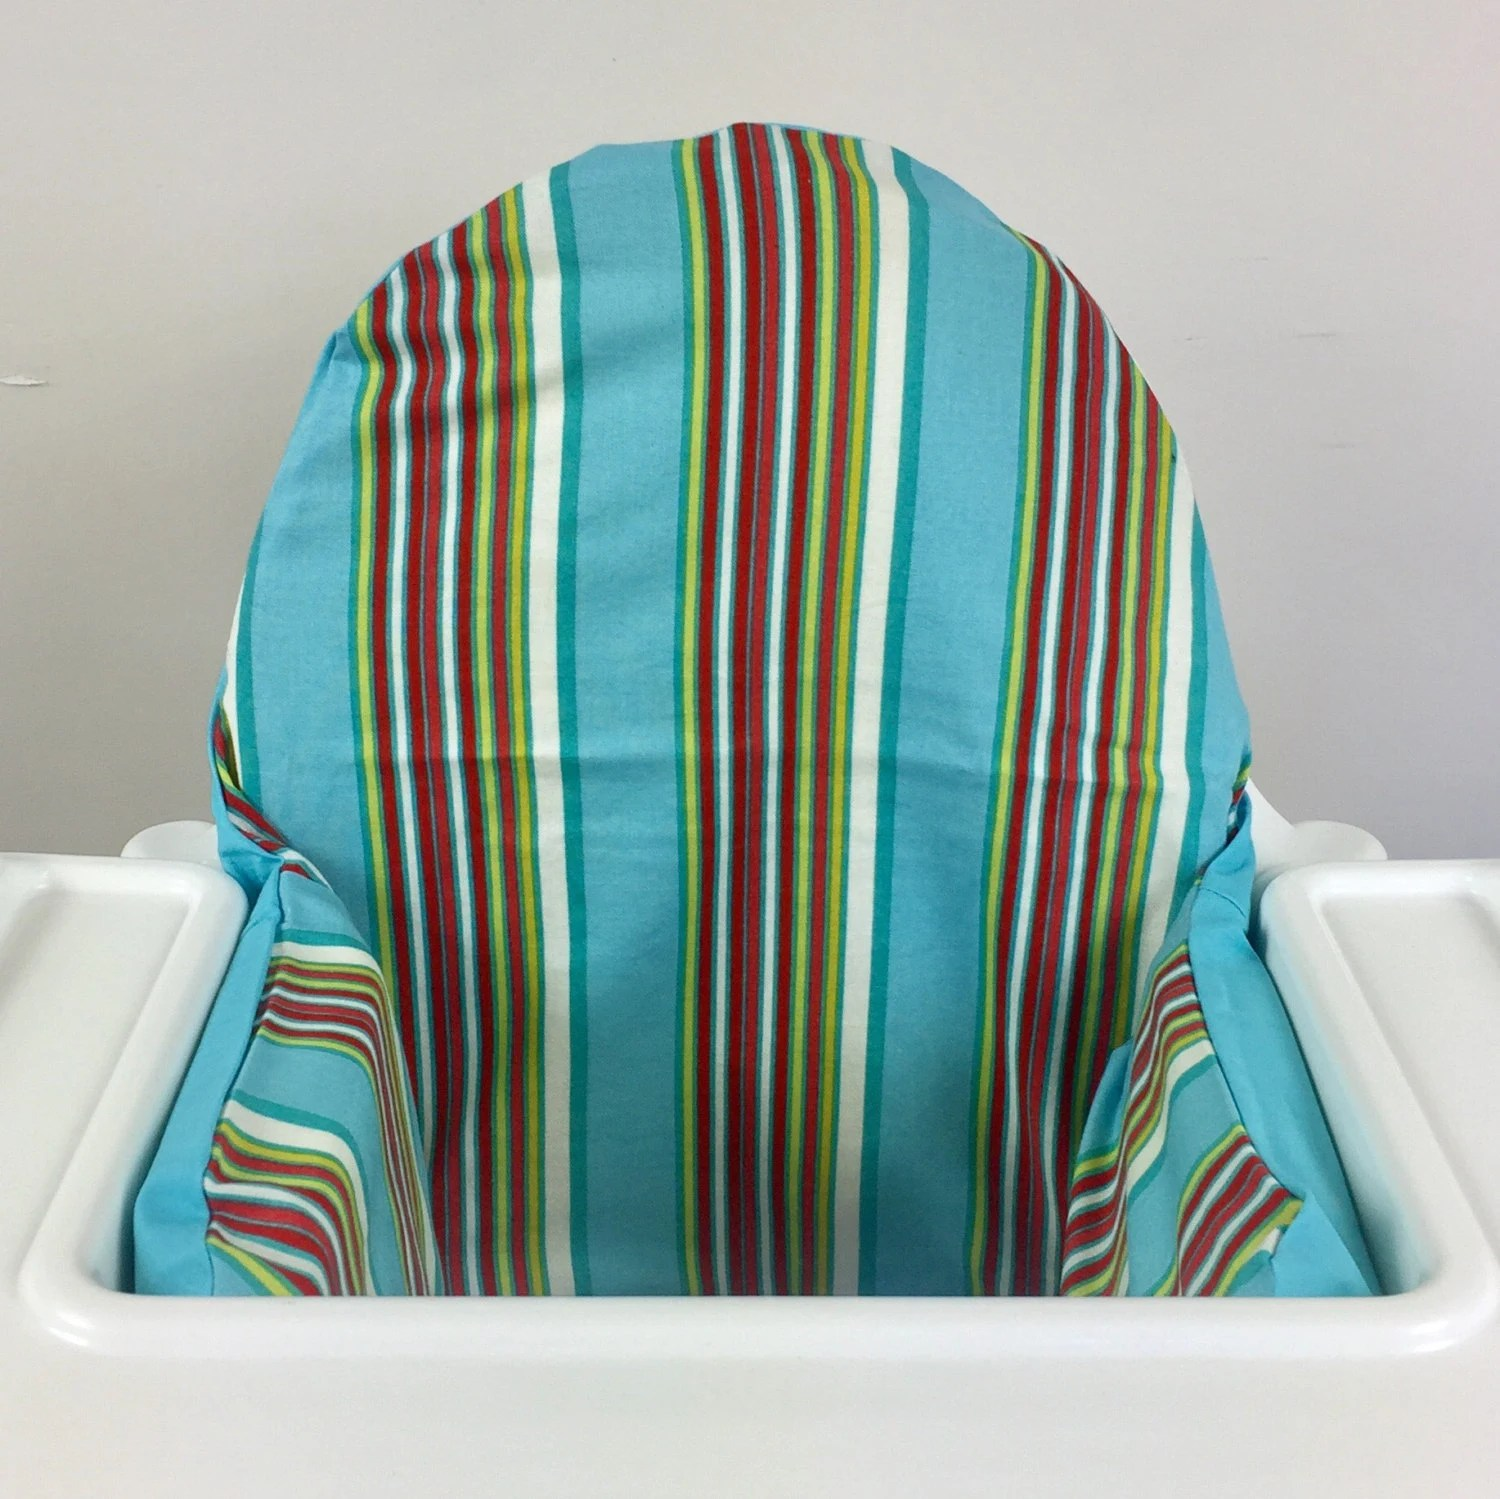 antilop high chair wooden kitchen chairs gumtree striped ikea highchair cushion cover with